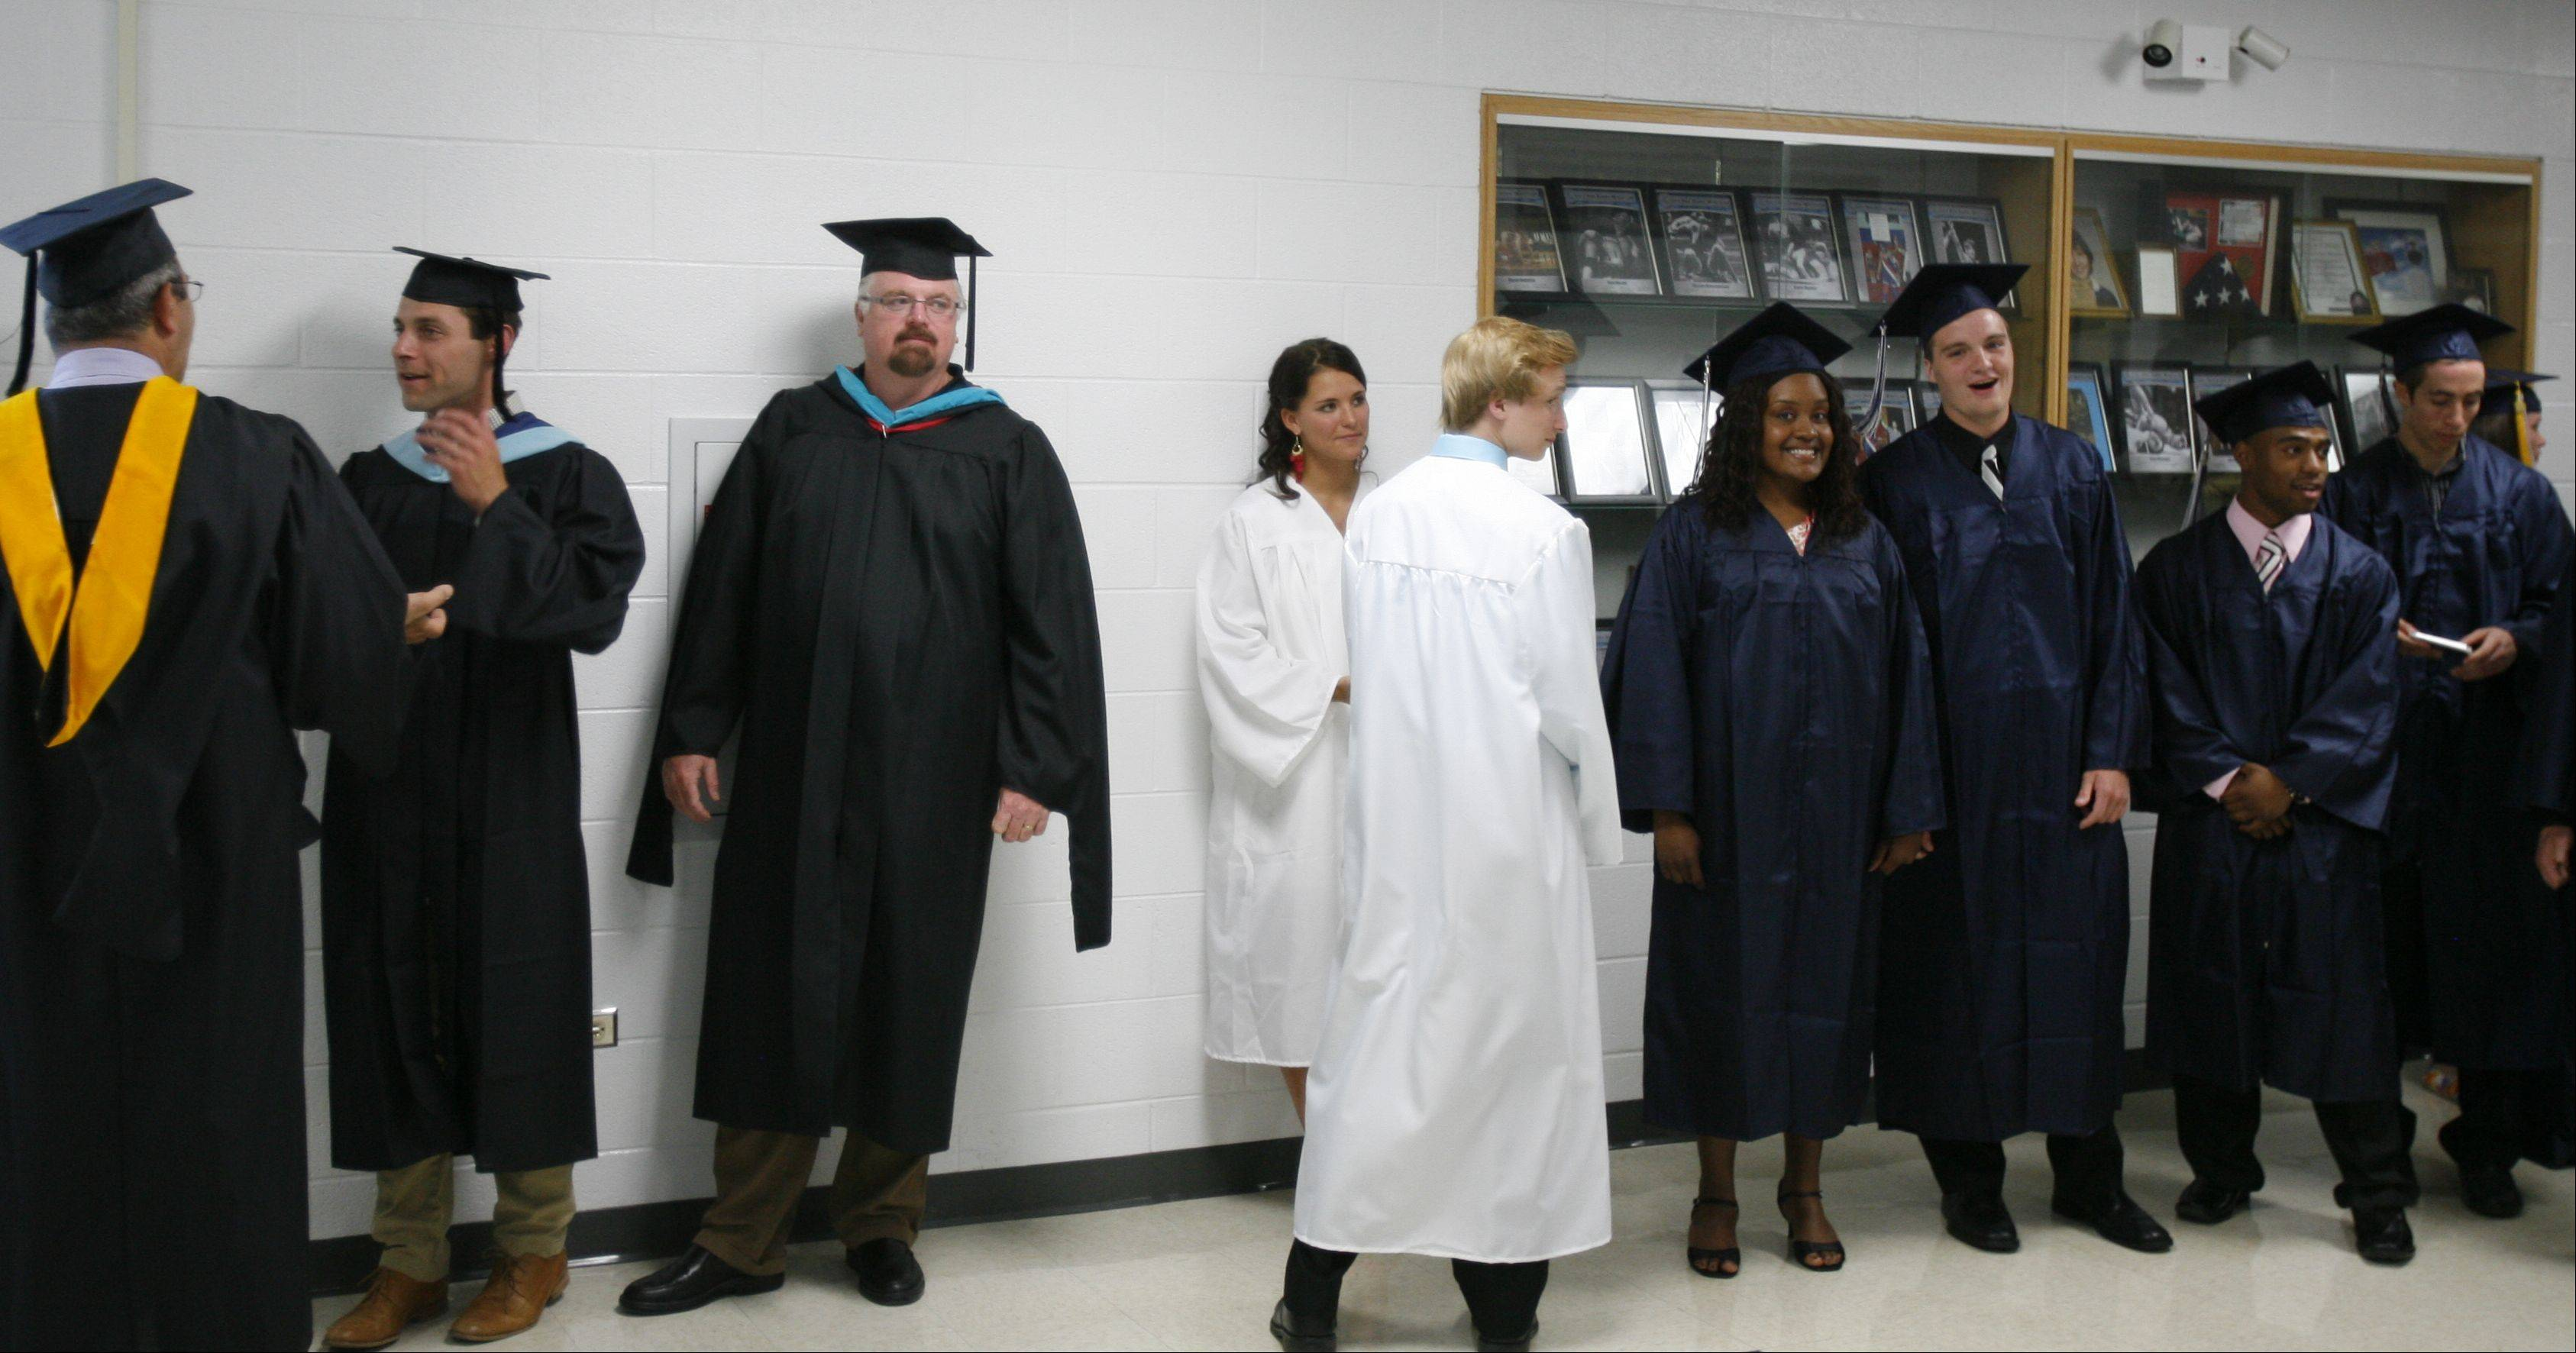 Lisle High School held its graduation ceremony Friday June 1 at Lisle High School.